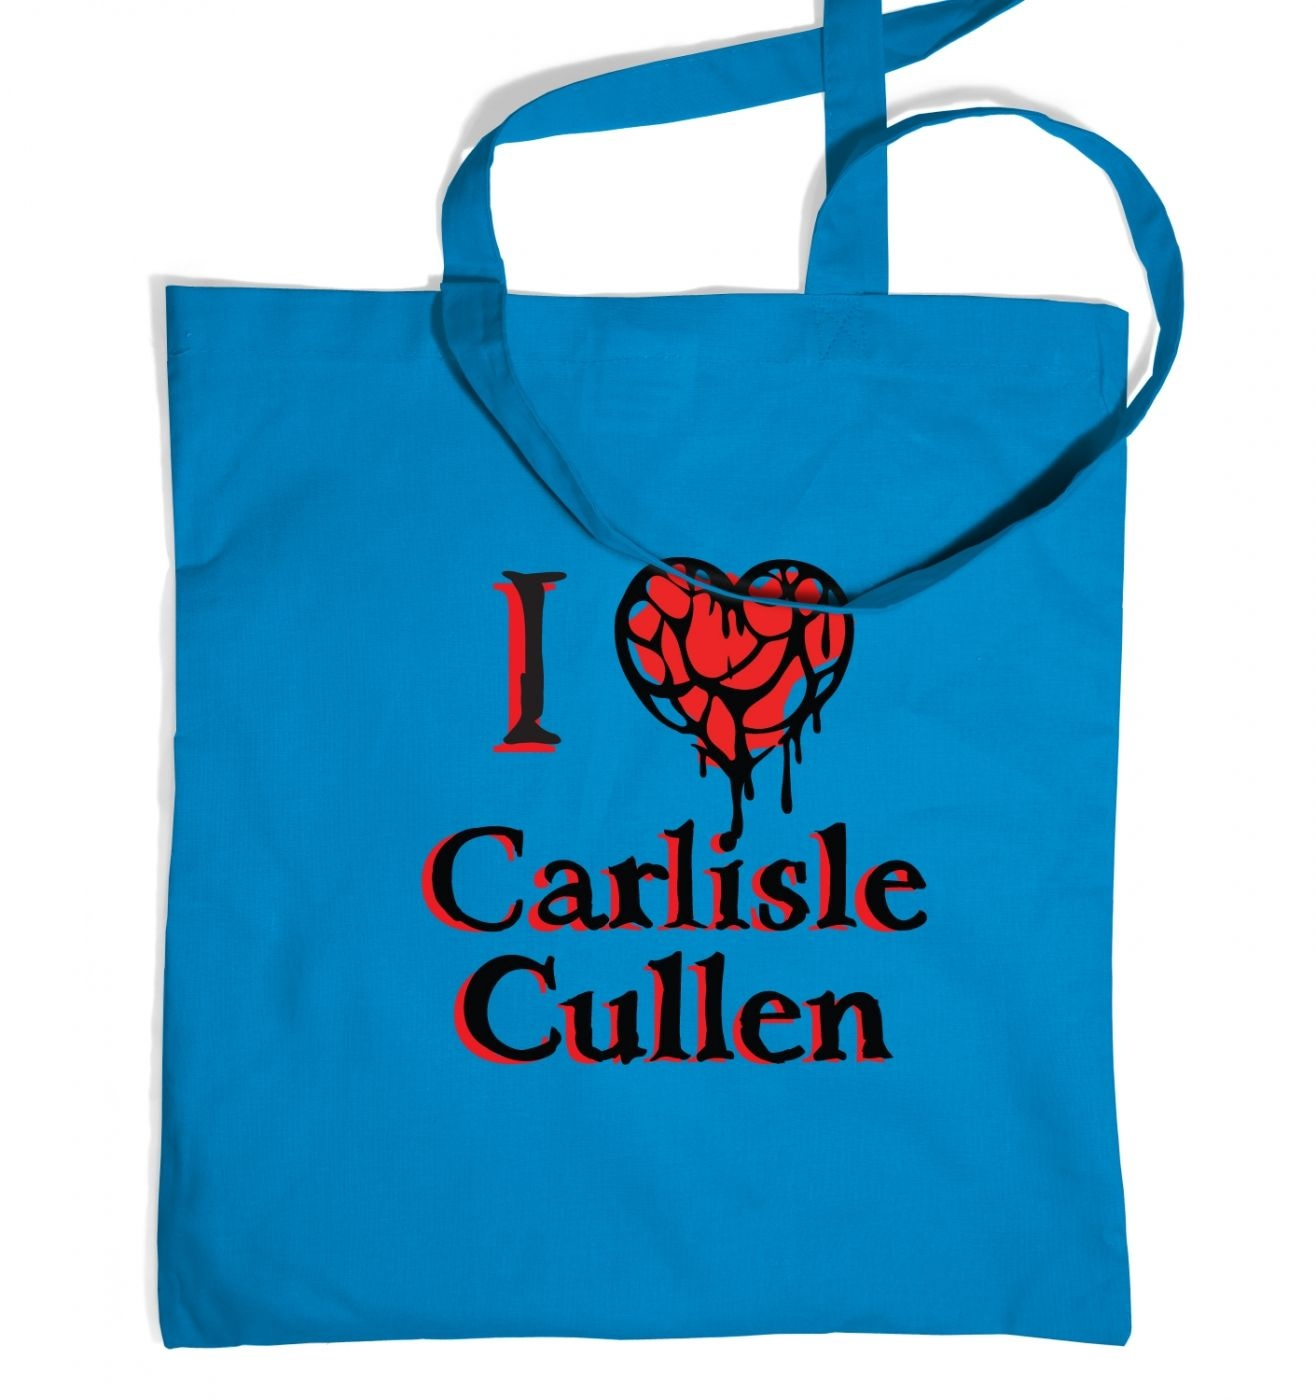 I heart Carlisle Cullen tote bag - Inspired by Twilight